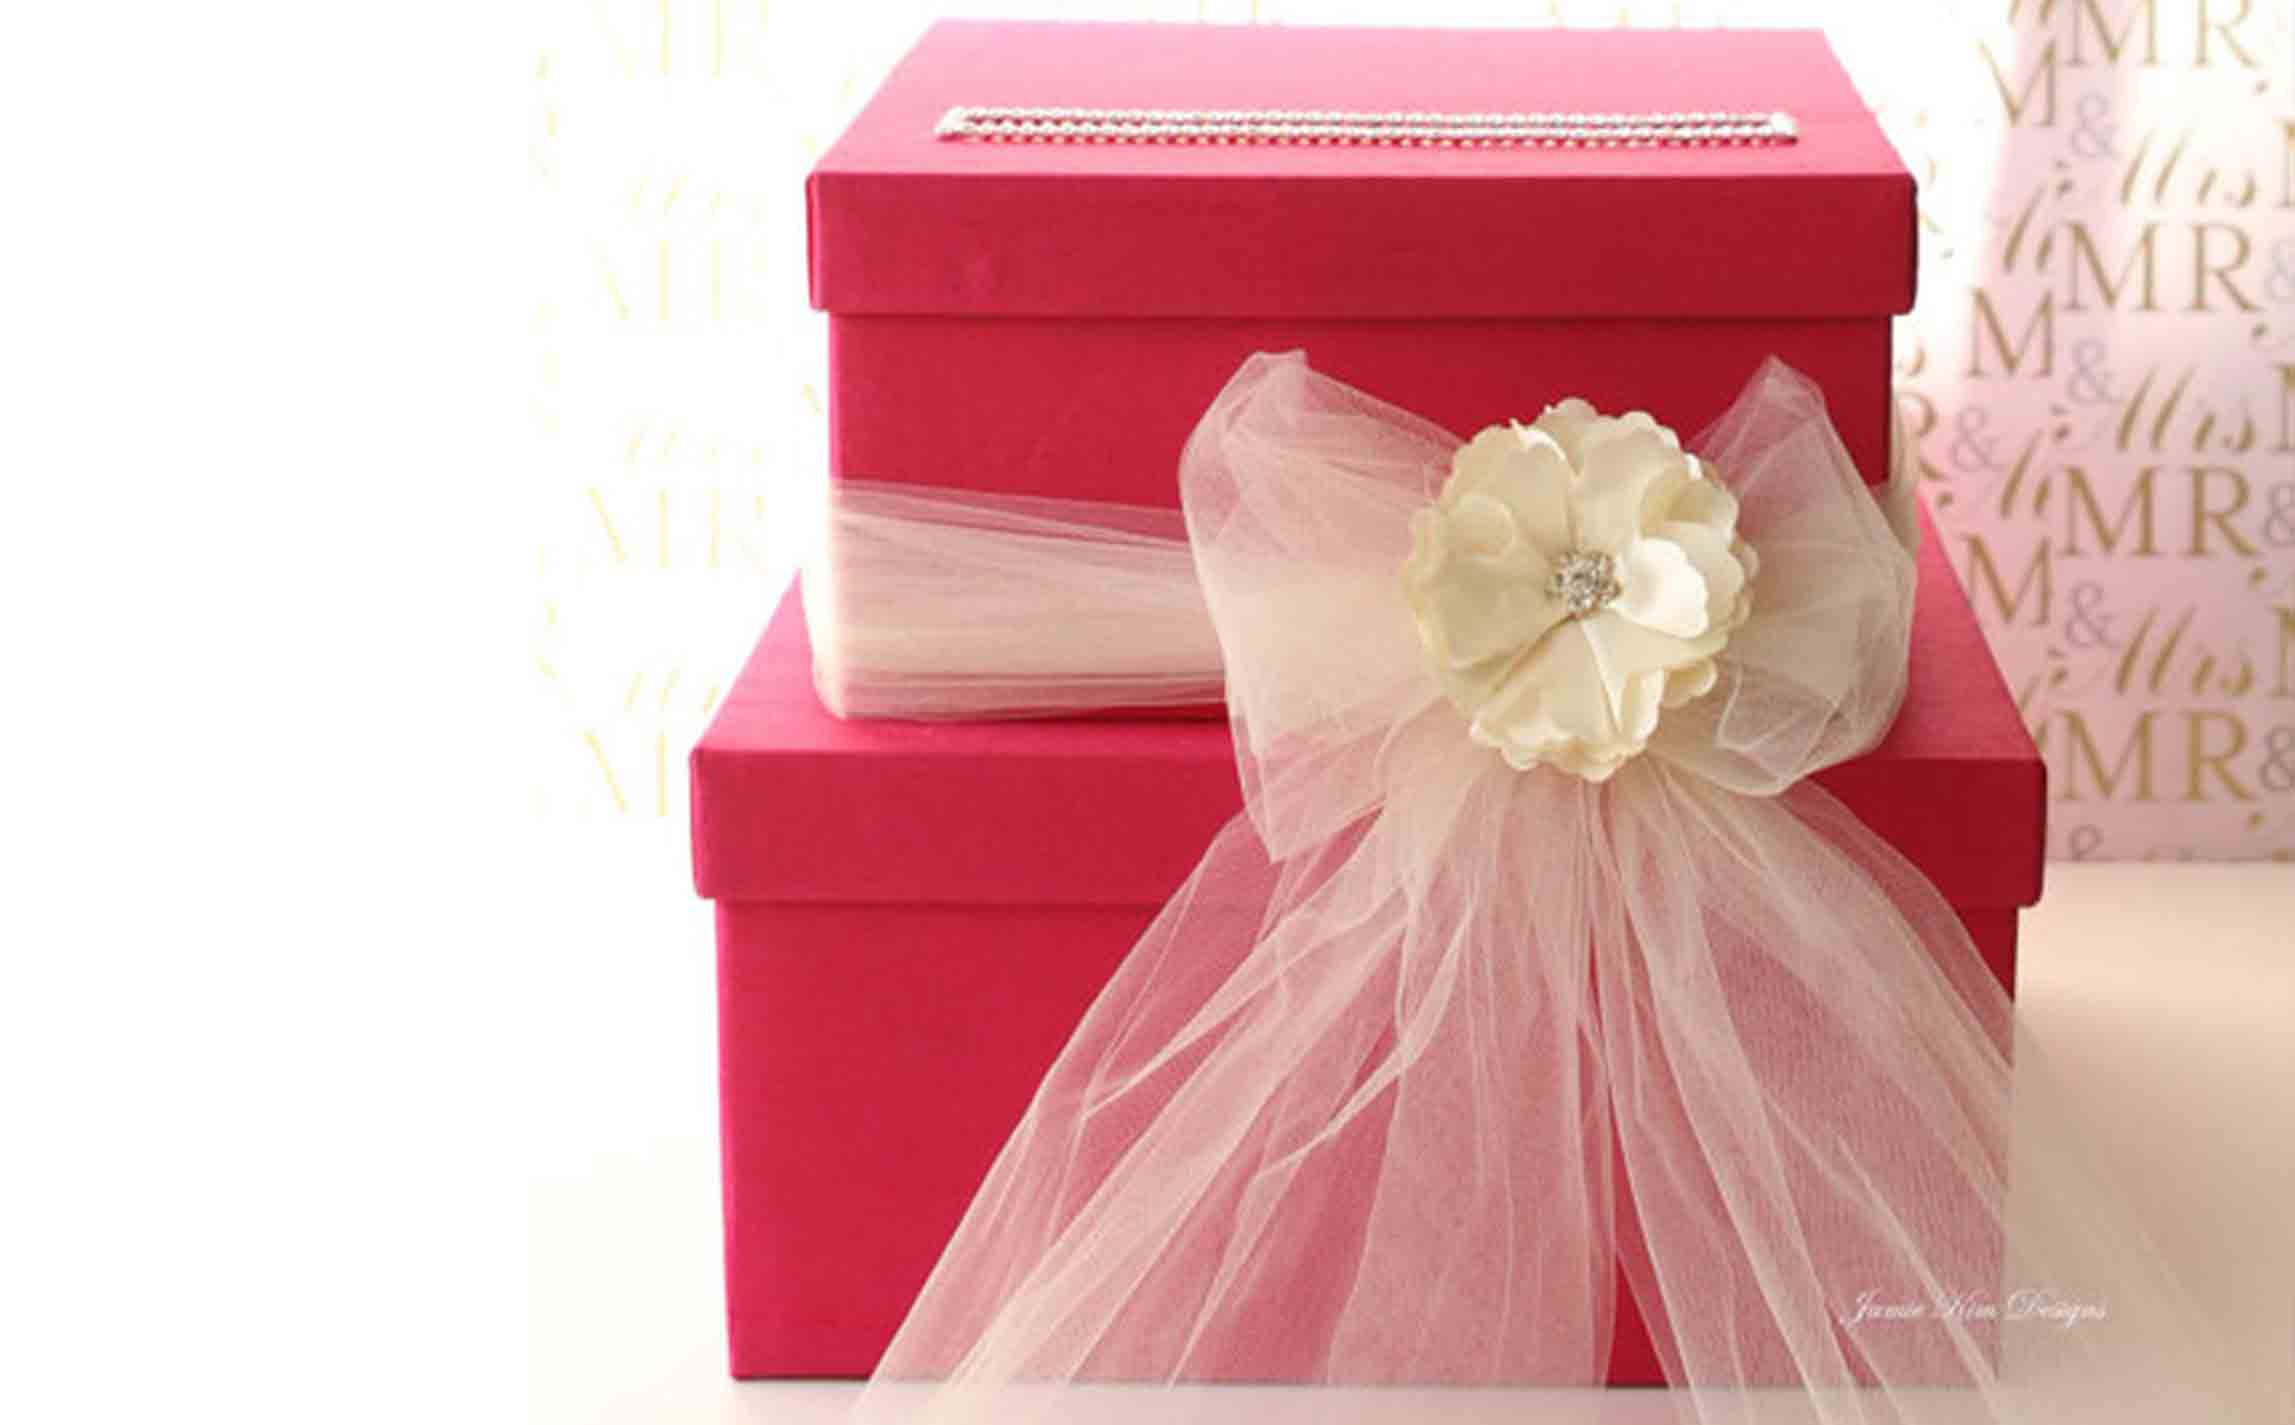 Wedding Gift Boxes: 8 Ways To Stop Wedding Gift Cards From Being Stolen